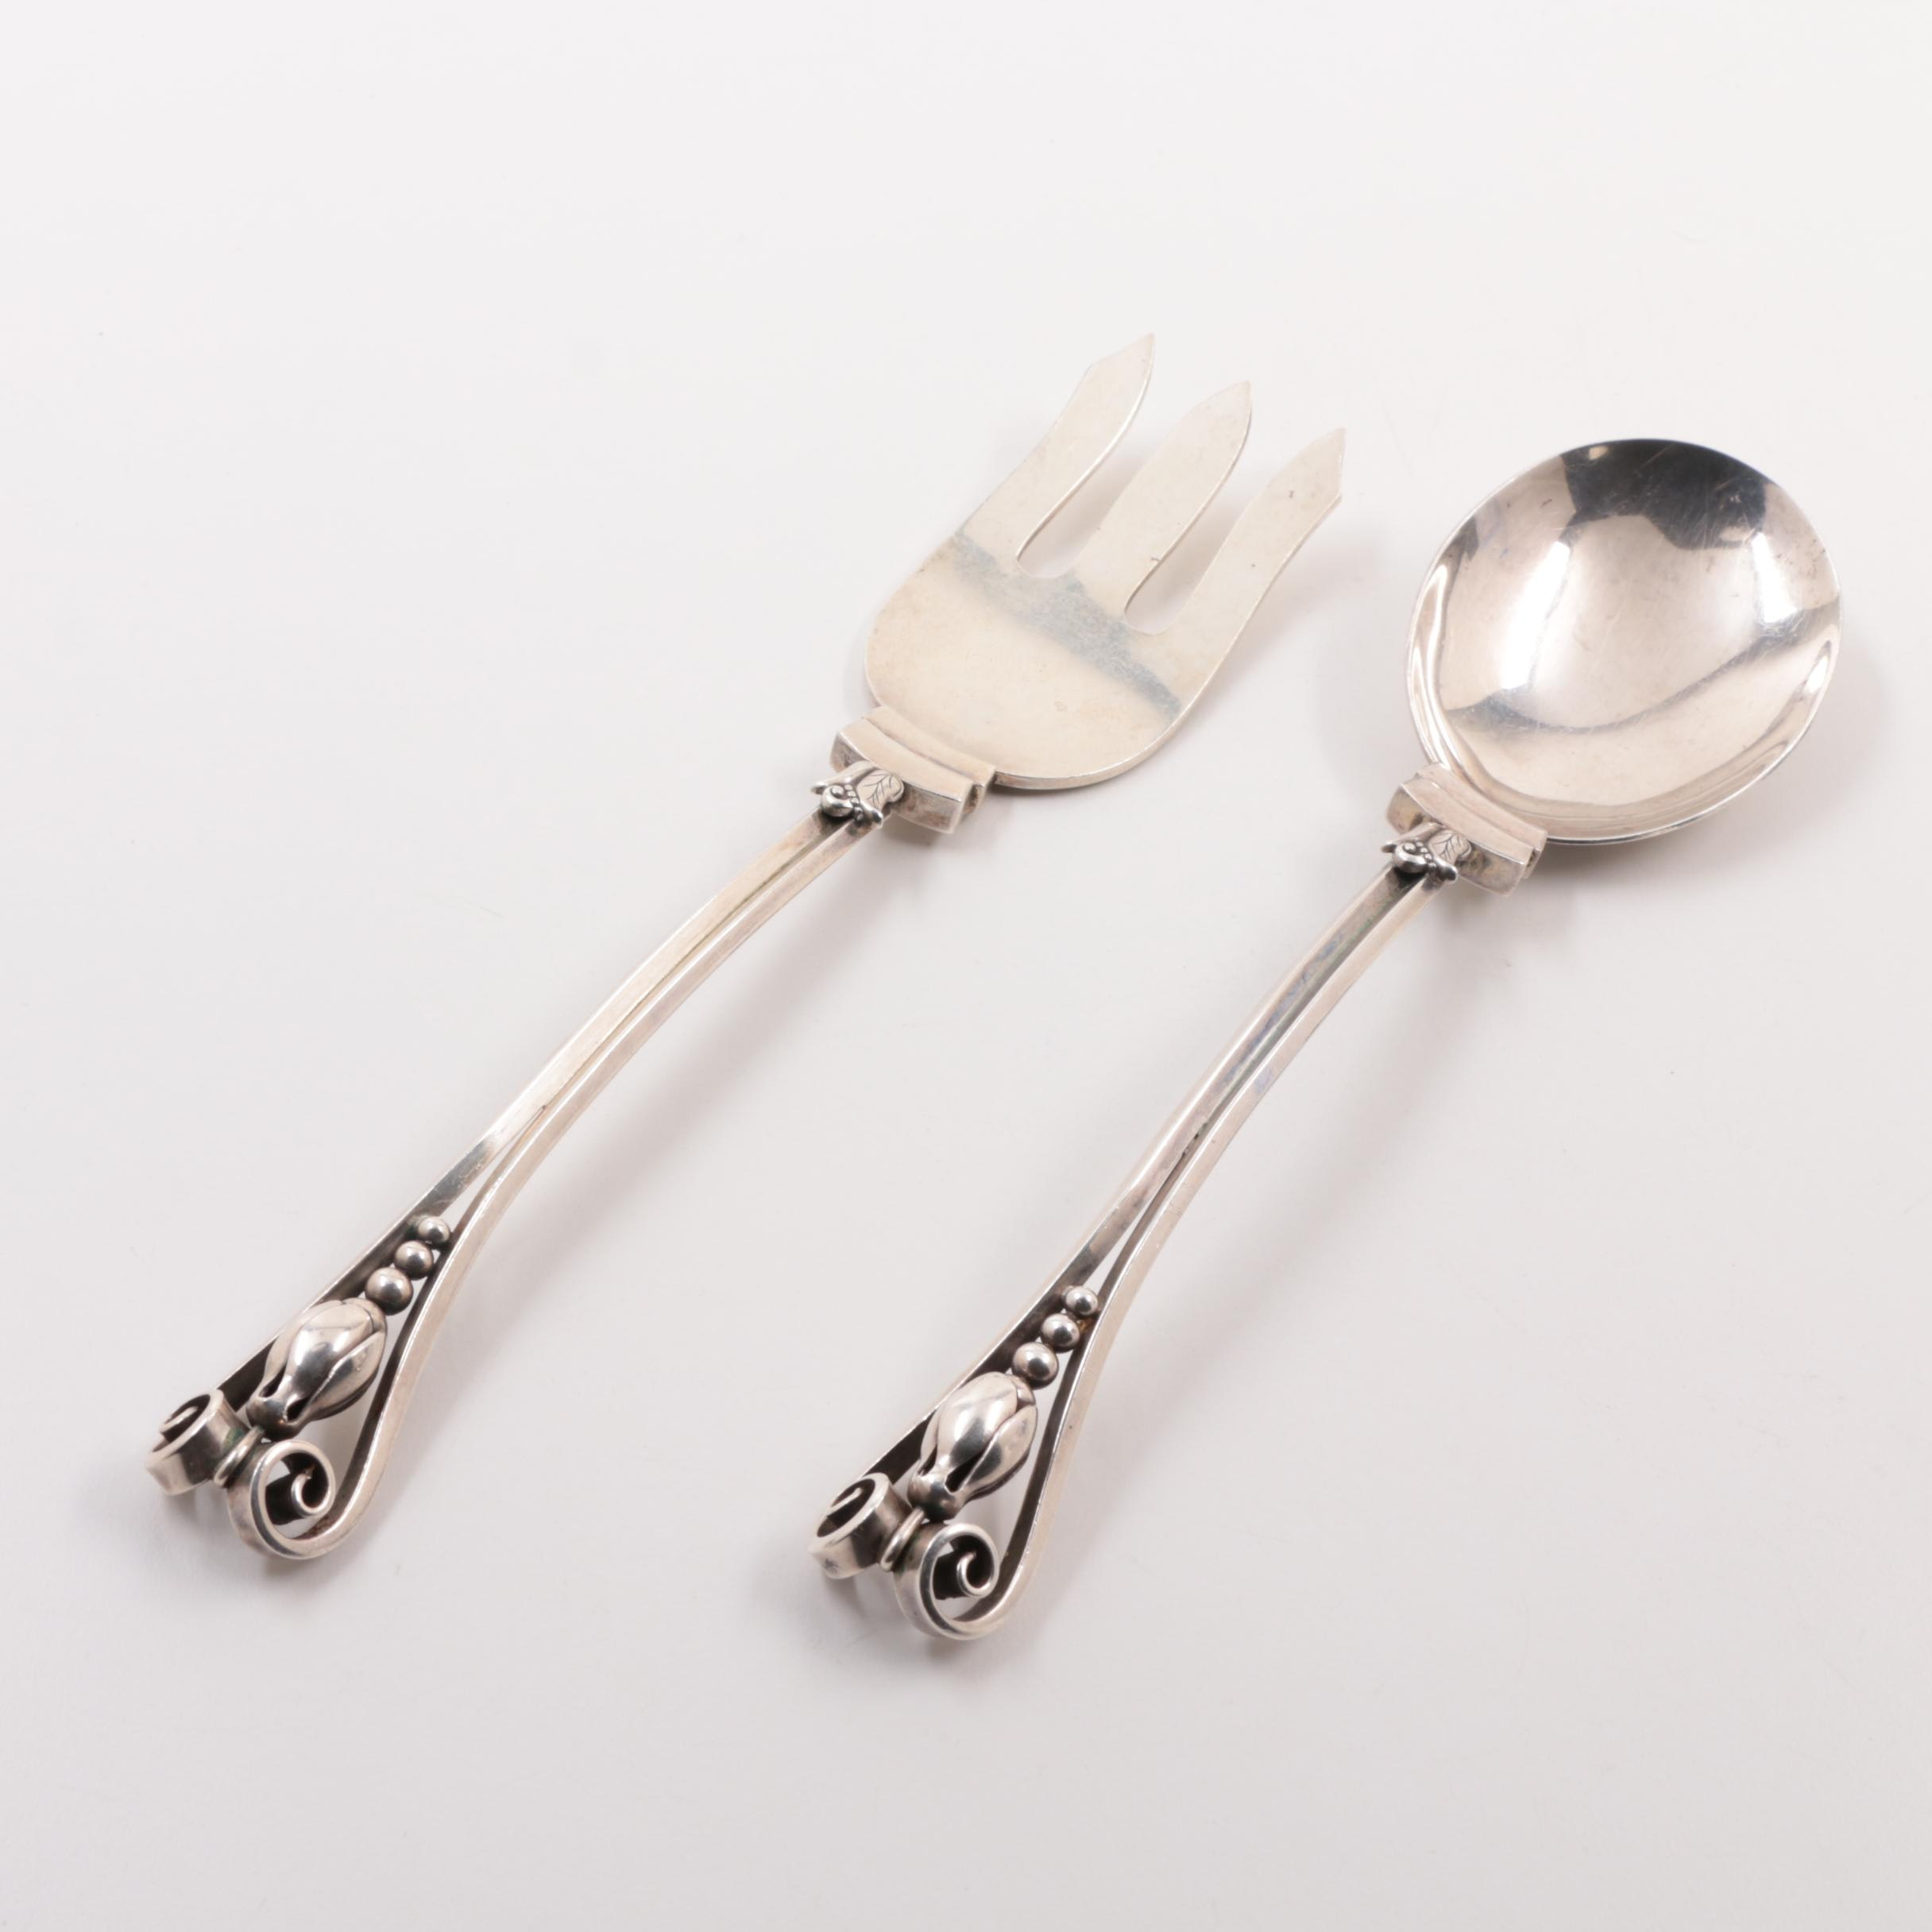 Georg Jensen Sterling Silver Salad Serving Set